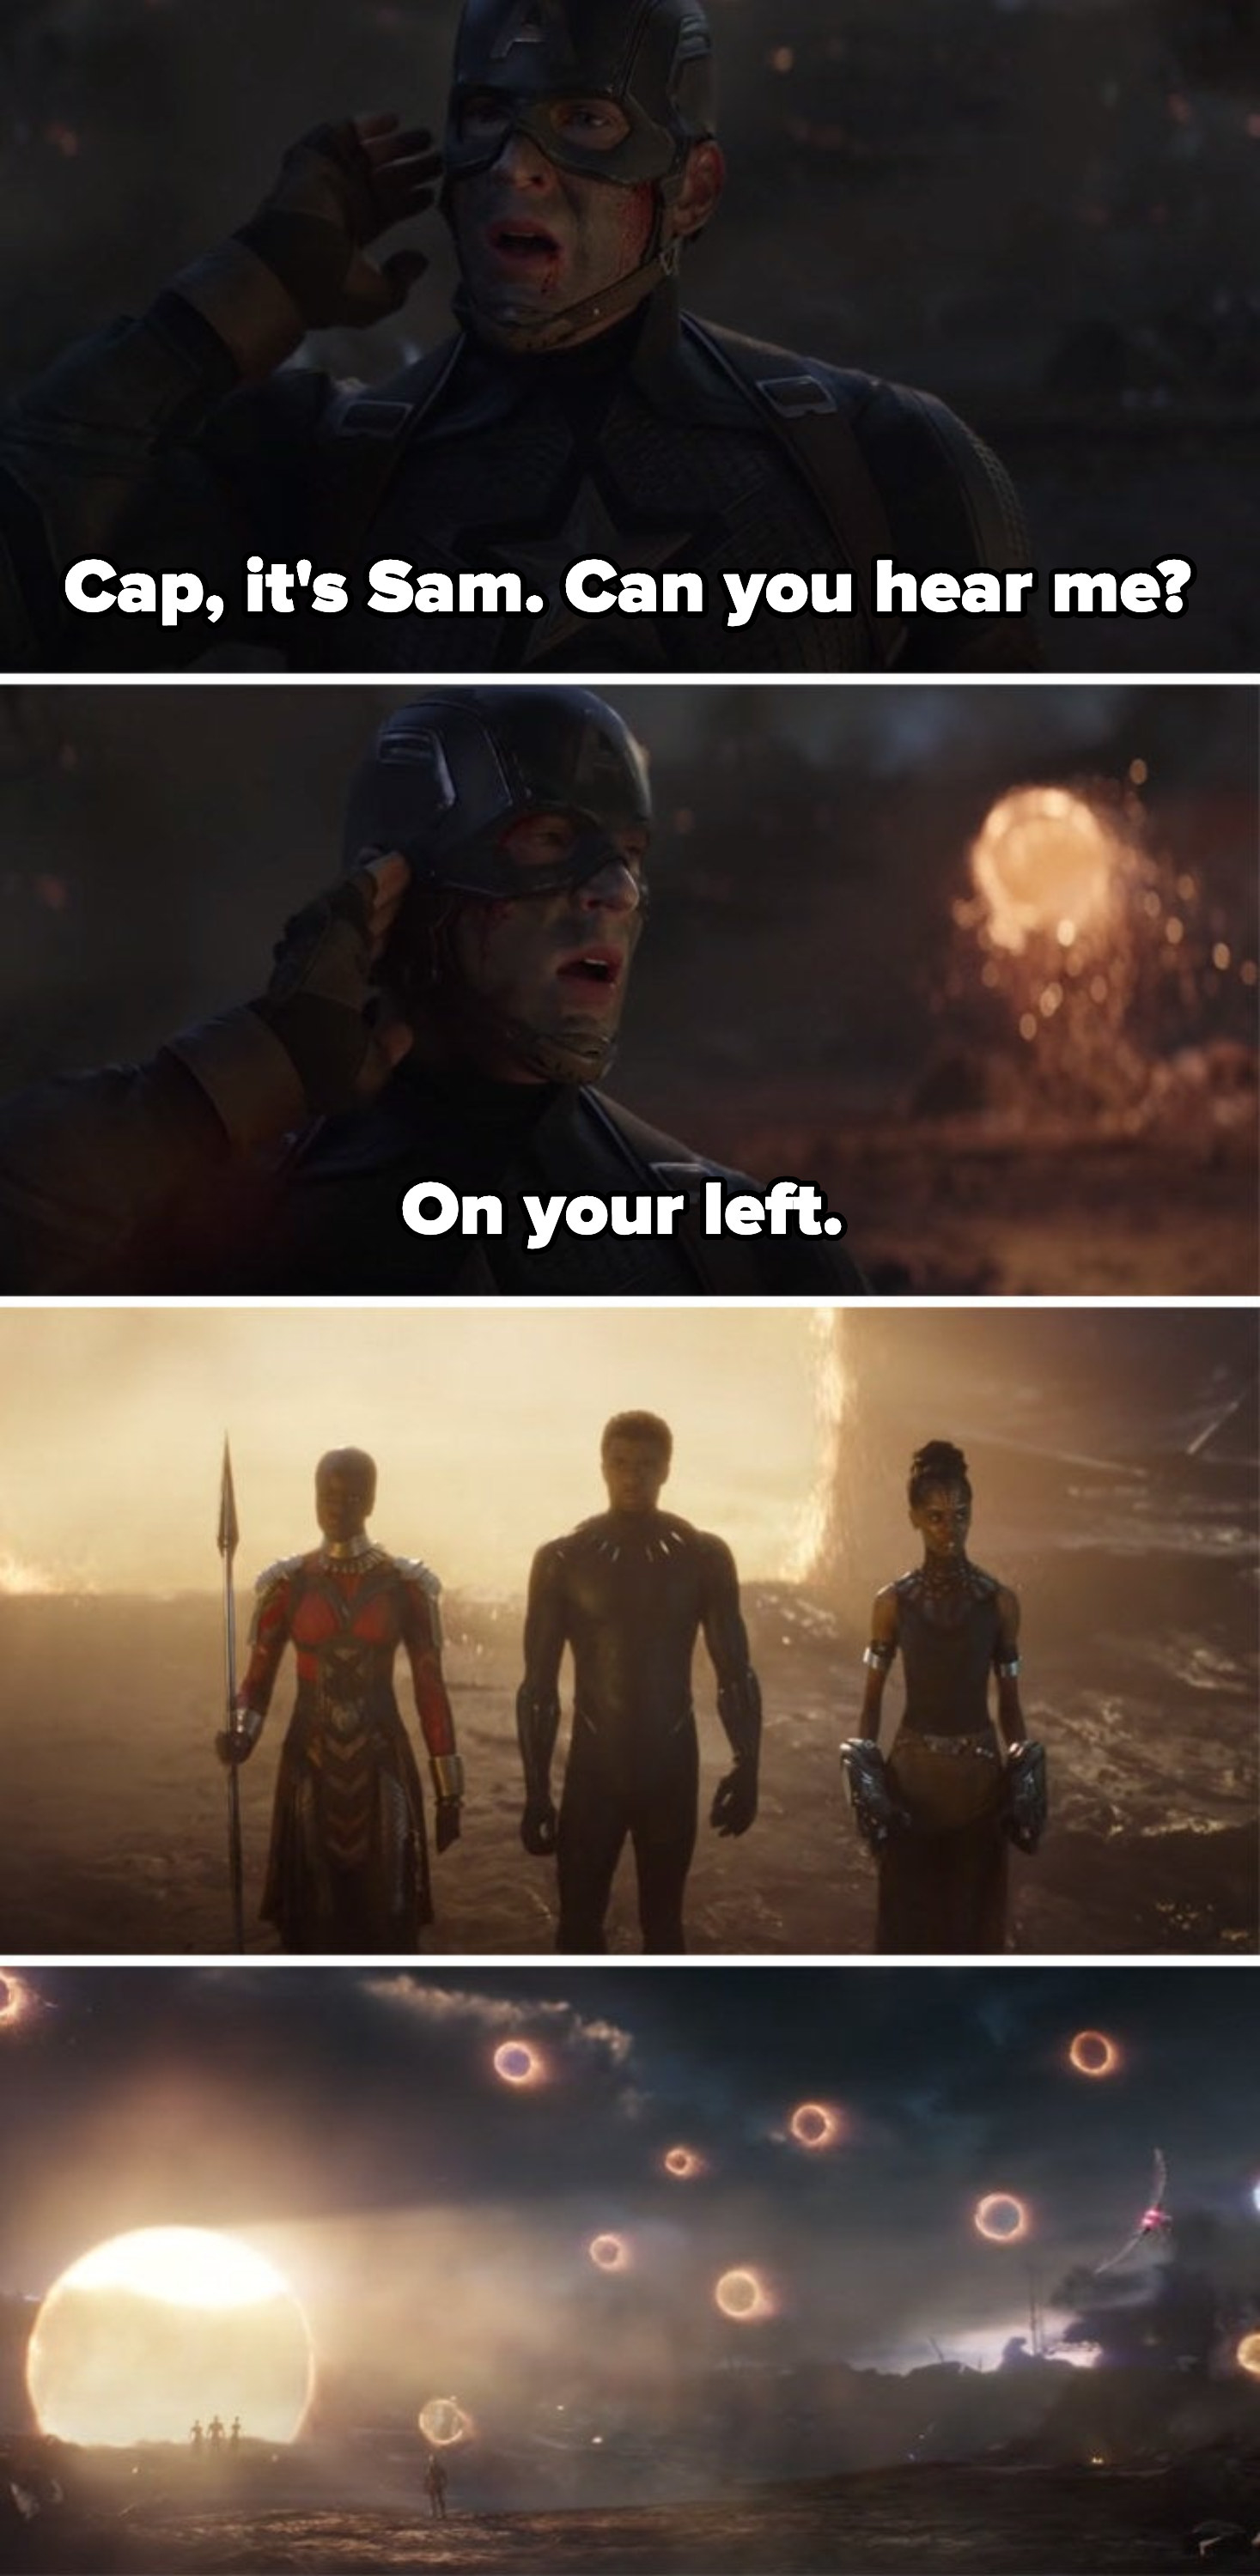 The final battle, when Sam tells Steve he's on his left and the portals that bring the other  Avengers in open up